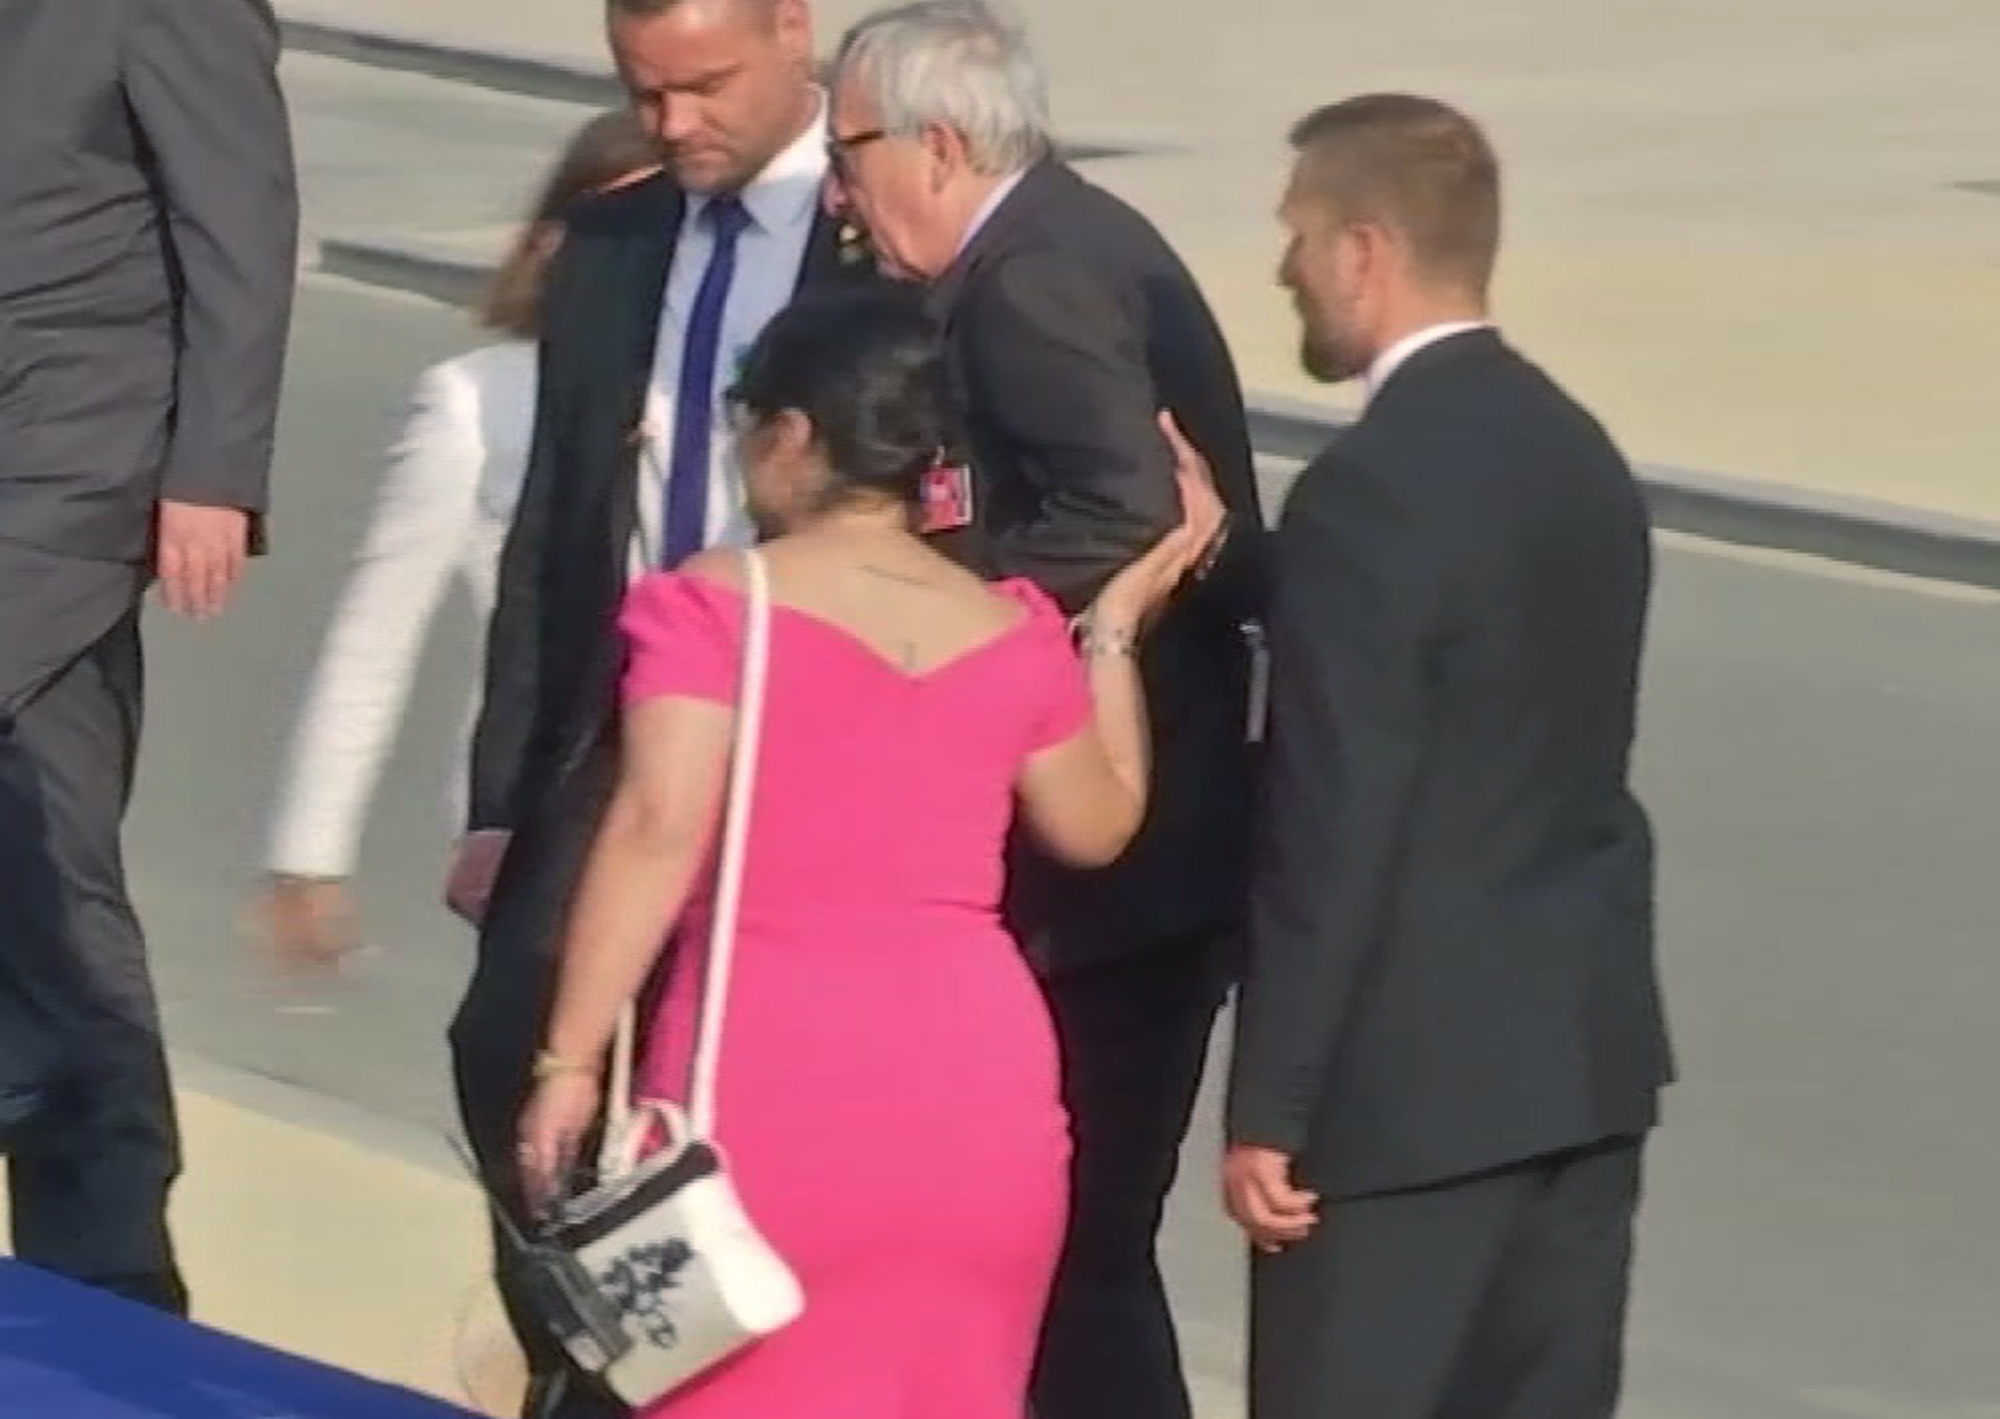 Jean-Claude Juncker is helped up the stairs at Parc Cinquantenaire in Brussels